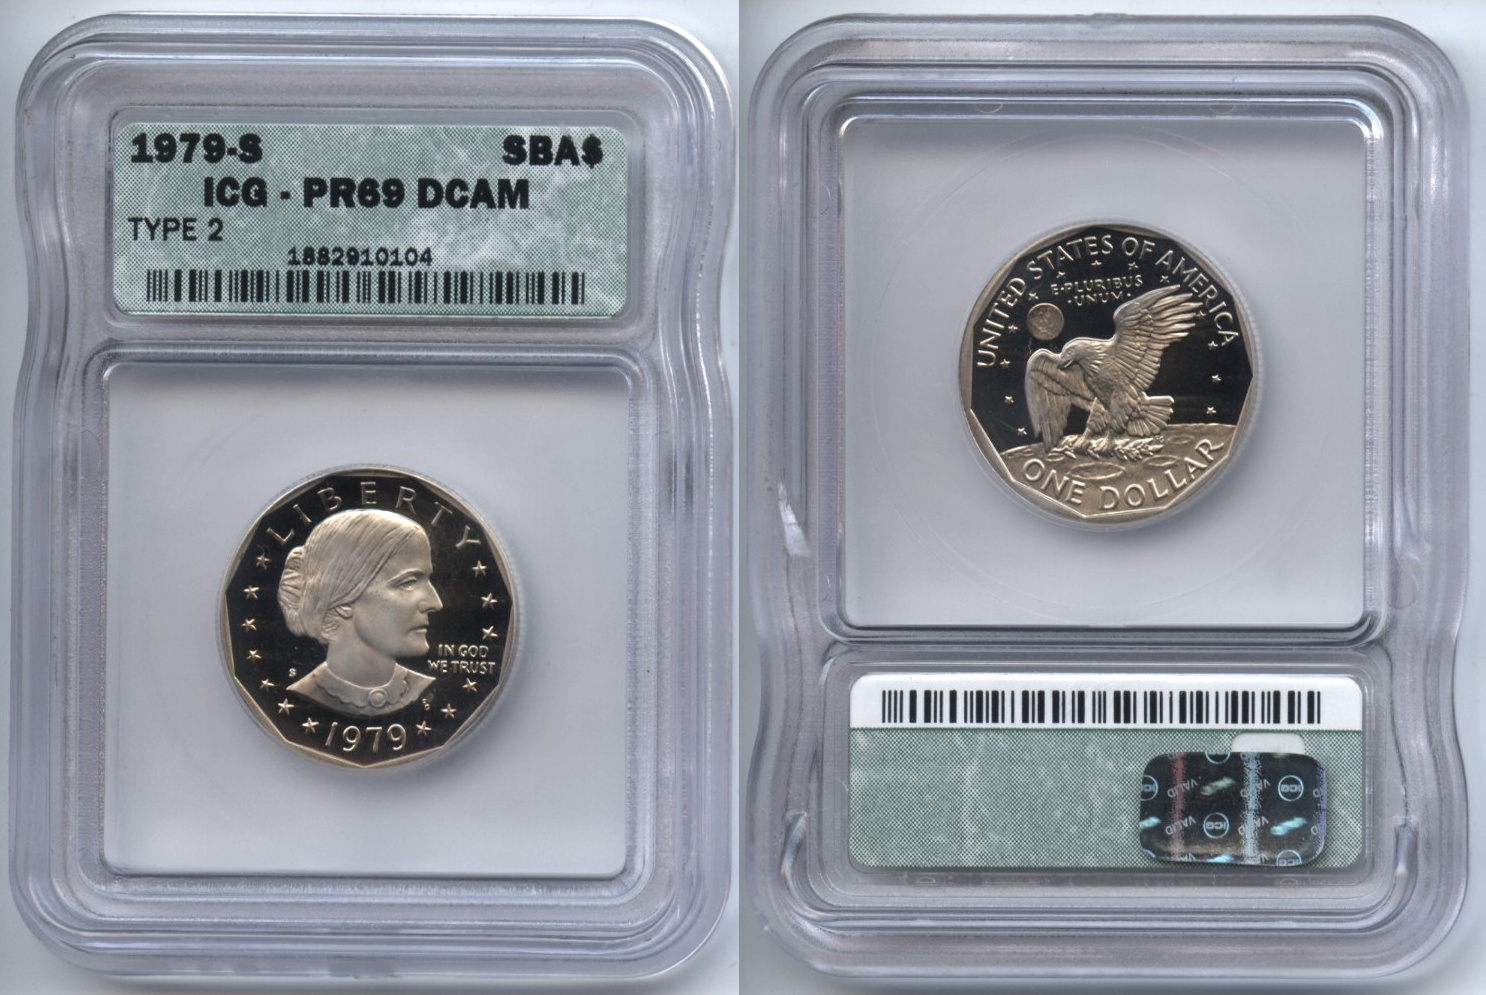 1979-S Type 2 Susan Anthony Silver Dollar ICG Proof-69 Deep Cameo